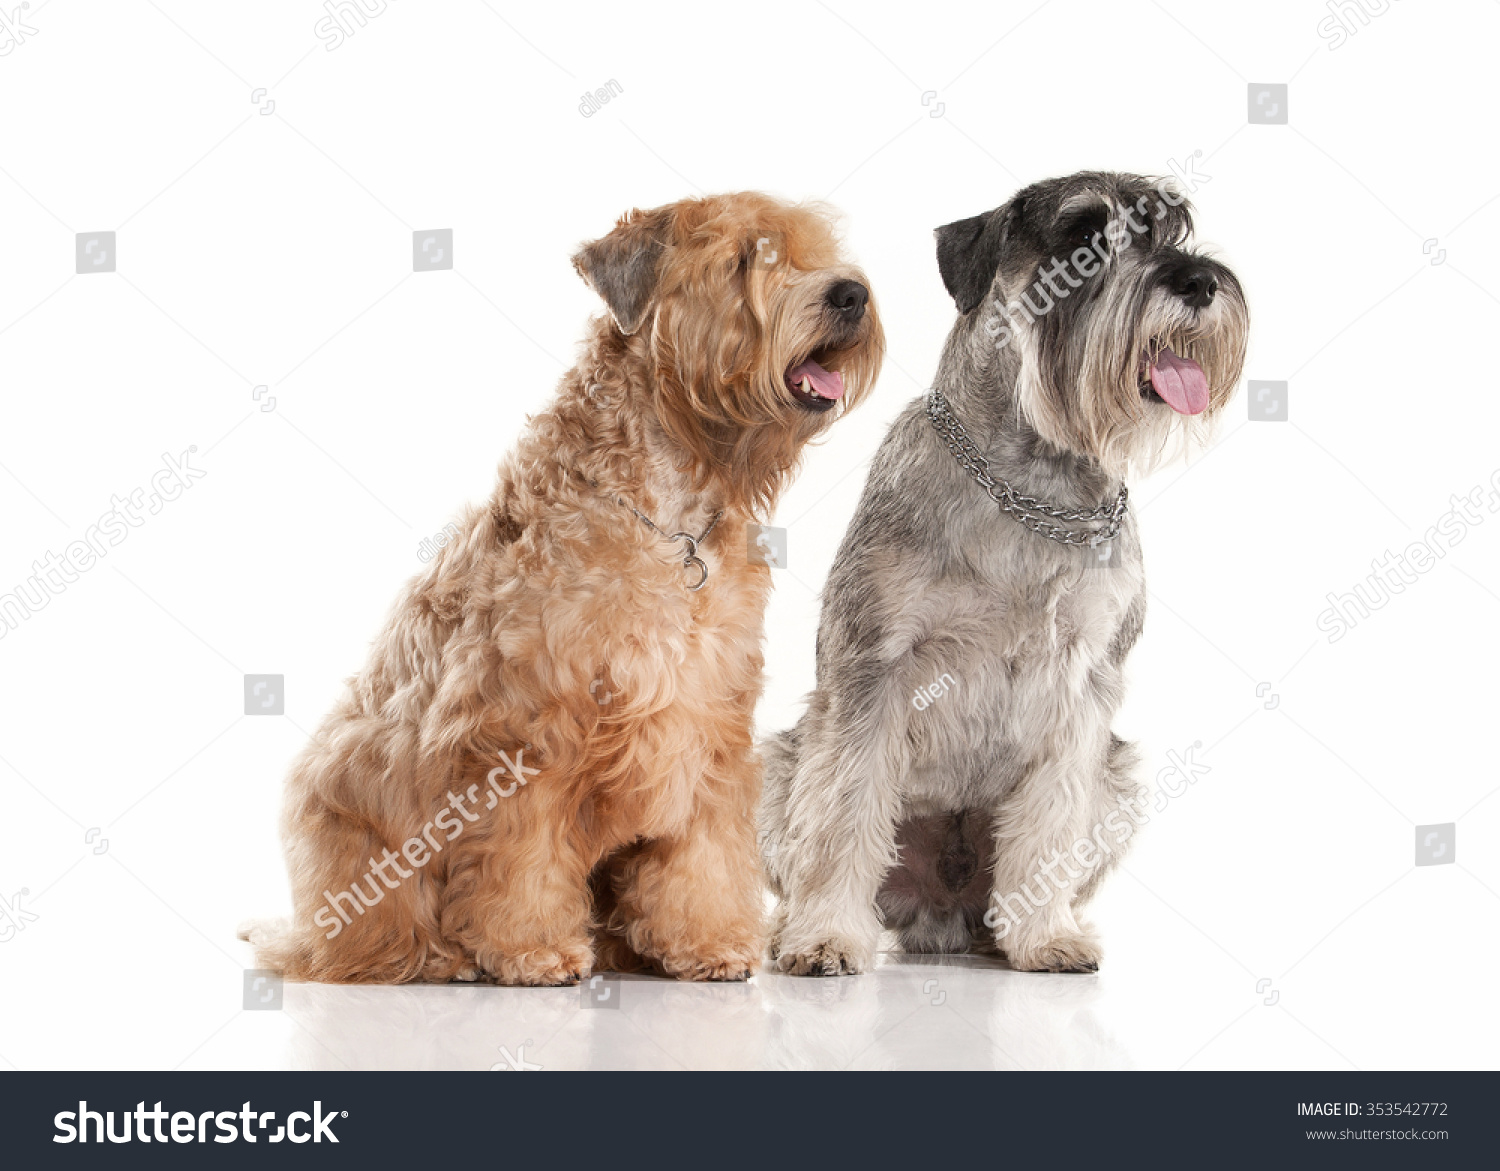 Miniature Schnauzer Irish Soft Coated Wheaten Animals Wildlife Stock Image 353542772